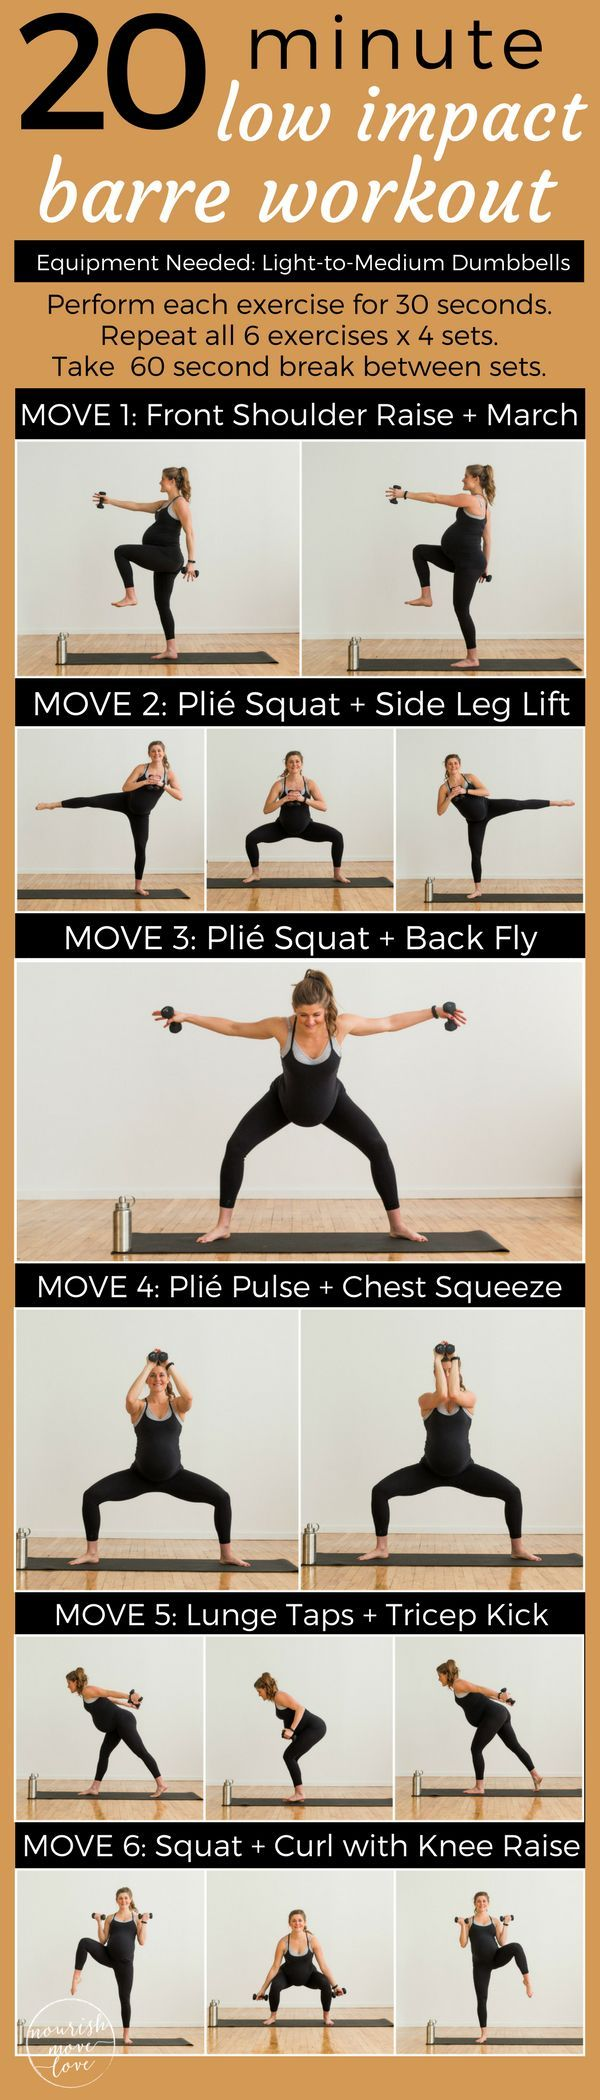 A low impact barre workout perfect for everyone; pregnant, postpartum, bad knees, or just need a low impact workout to sculpt and tone at home. A 20 minute workout that's easy on the knees but challenges your fitness. Combines traditional barre movements